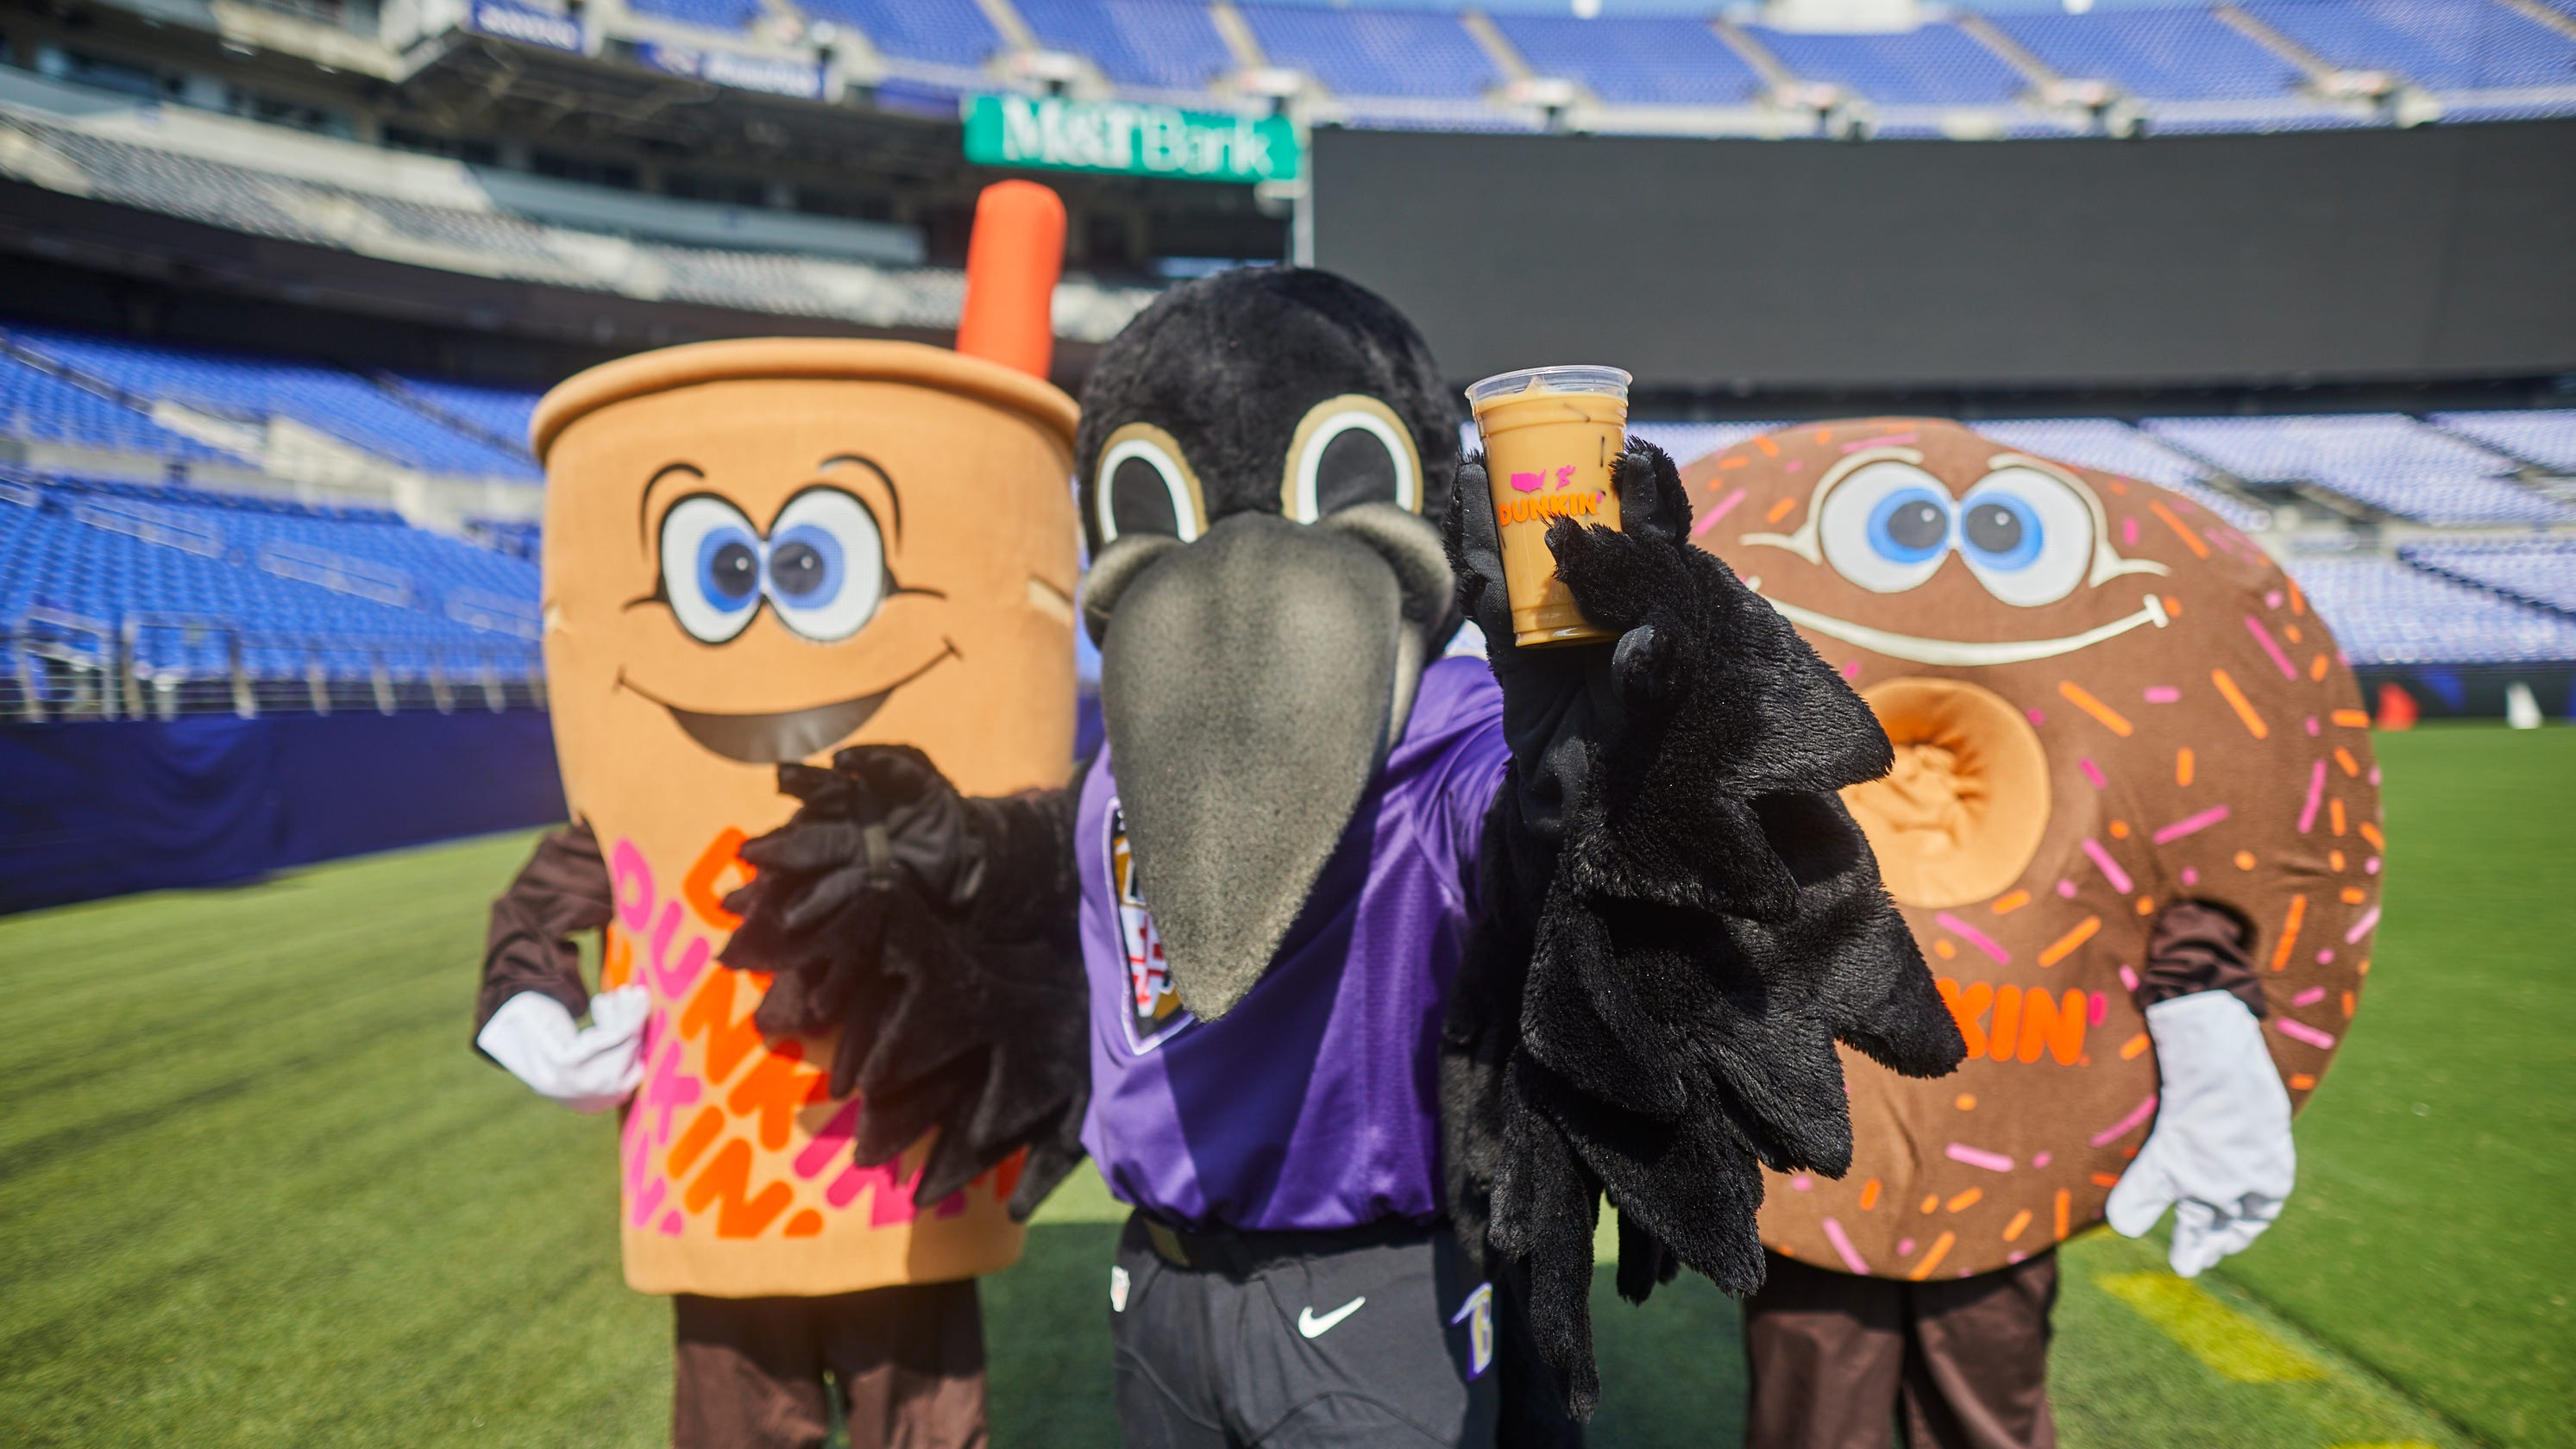 Dunkin' Donuts offers free coffee to celebrate Ravens win